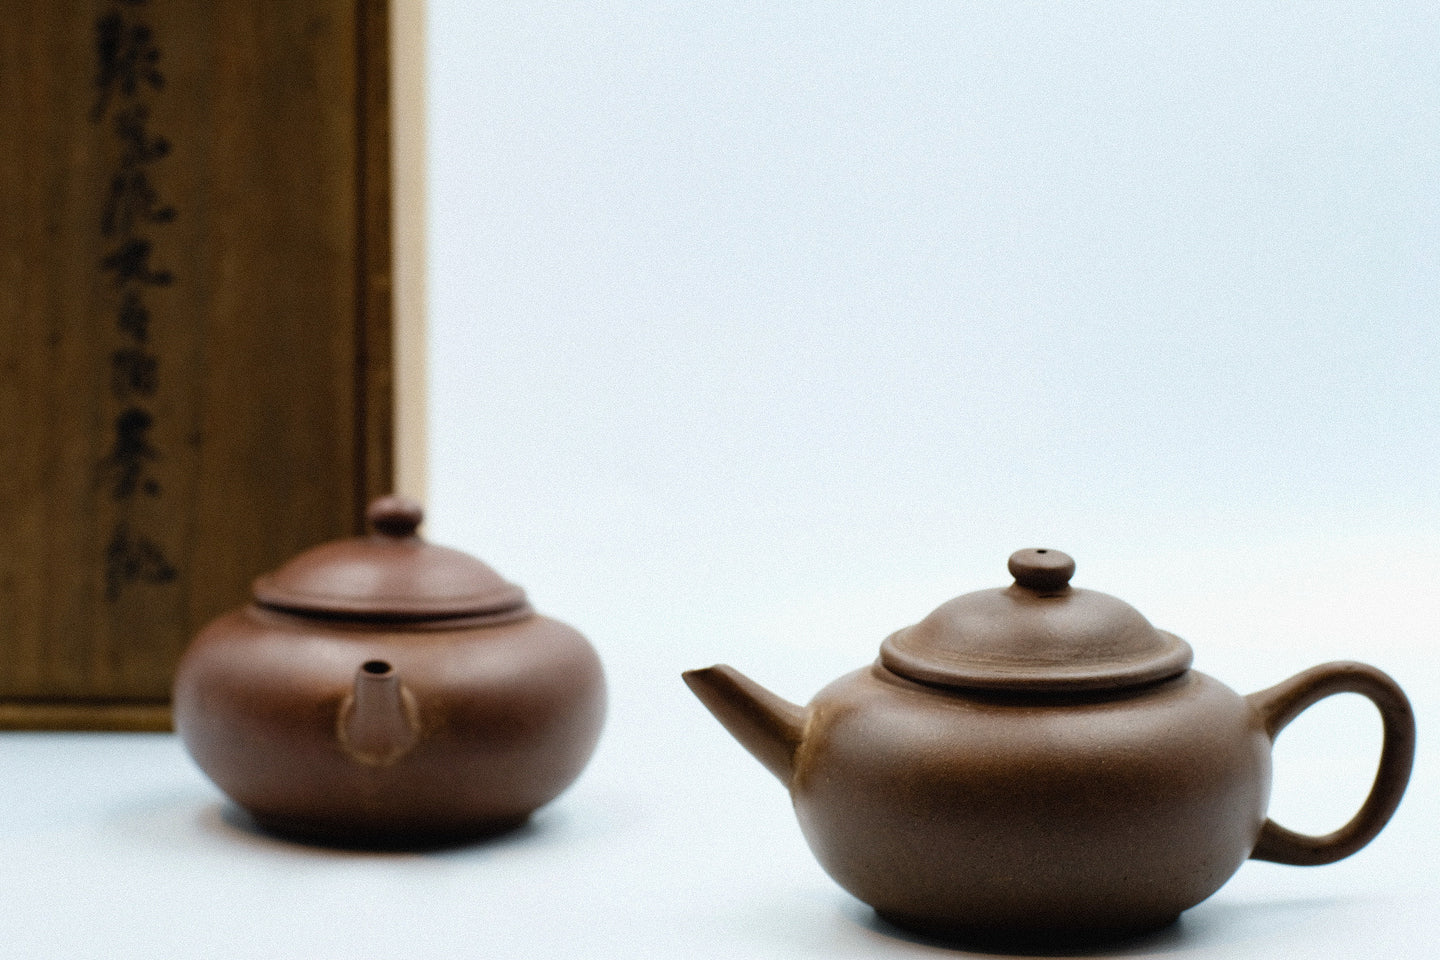 Antique Ming and Qing Dynasty Yixing Teapot